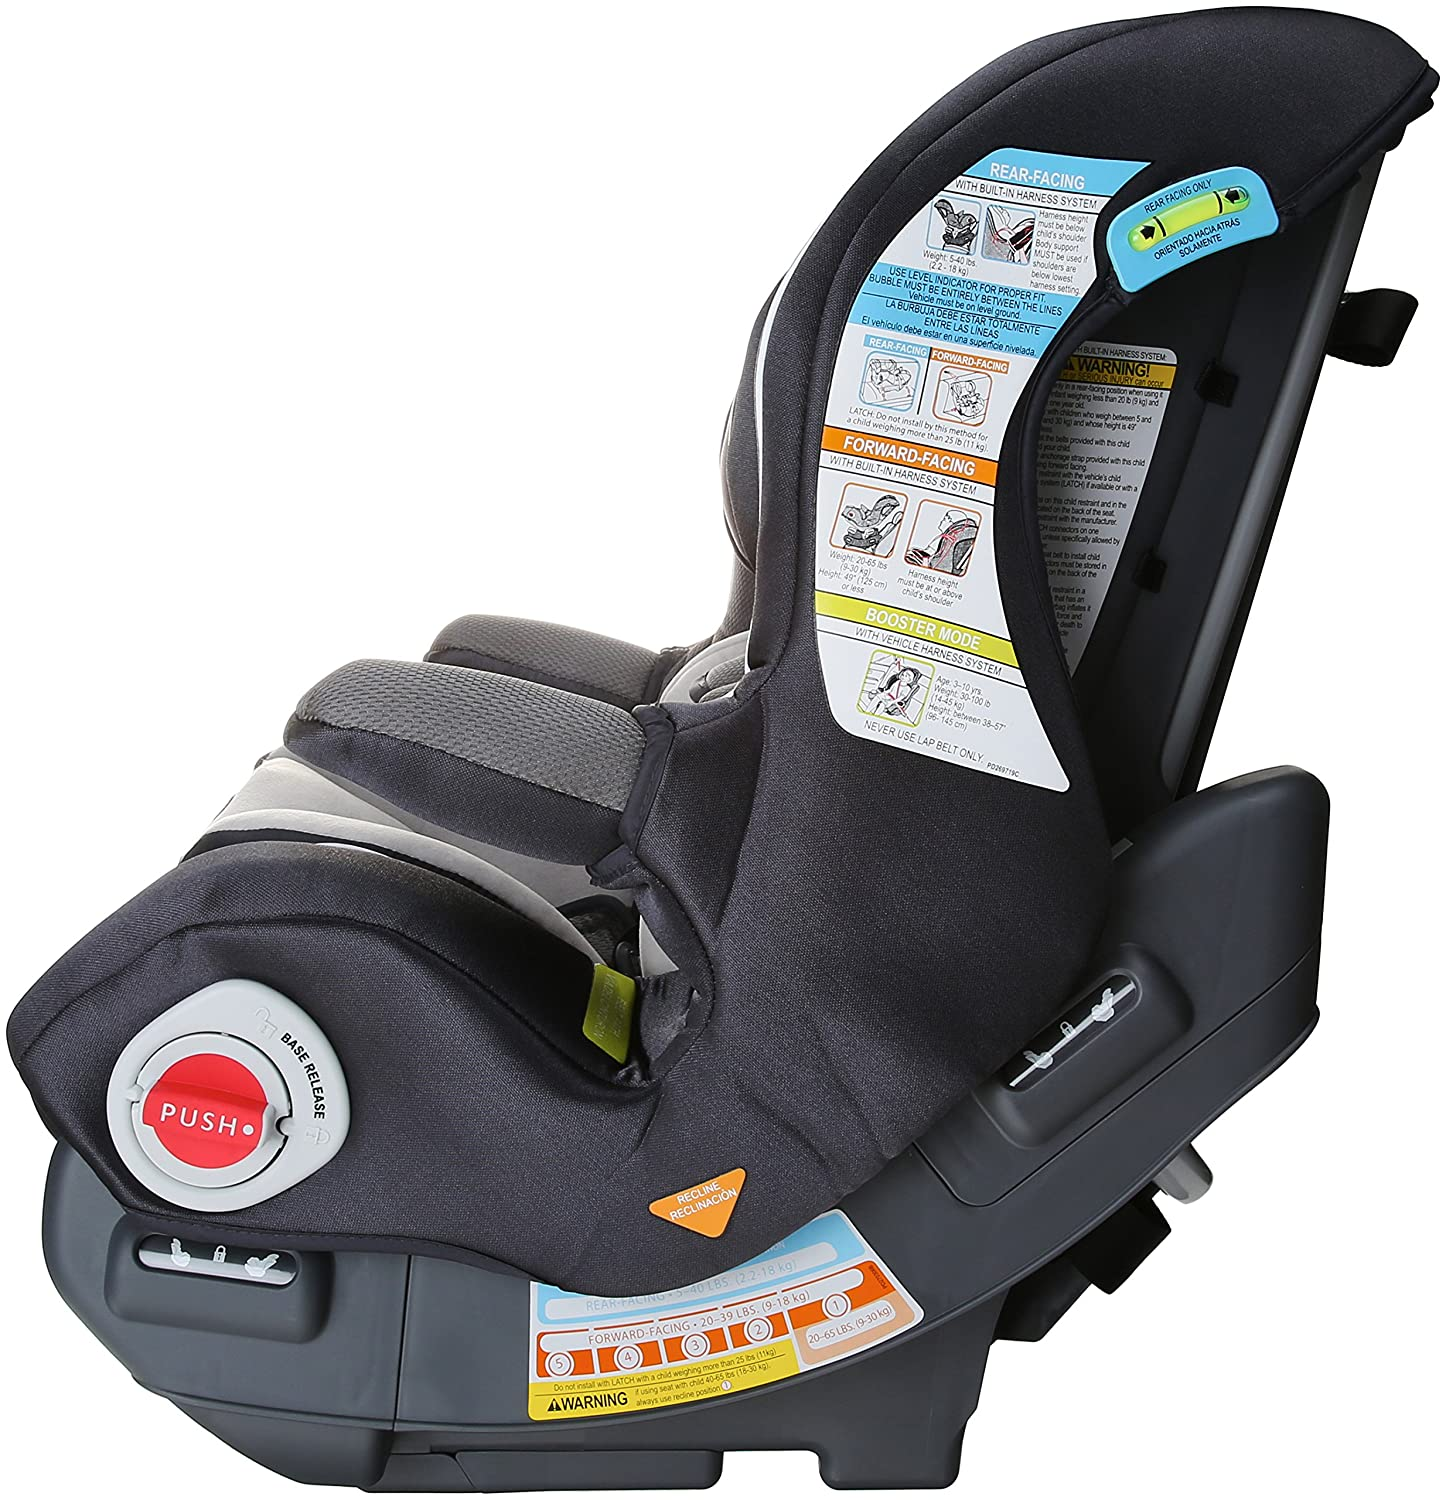 Amazon.com : Graco Smart Seat All-in-One Convertible Car Seat ...